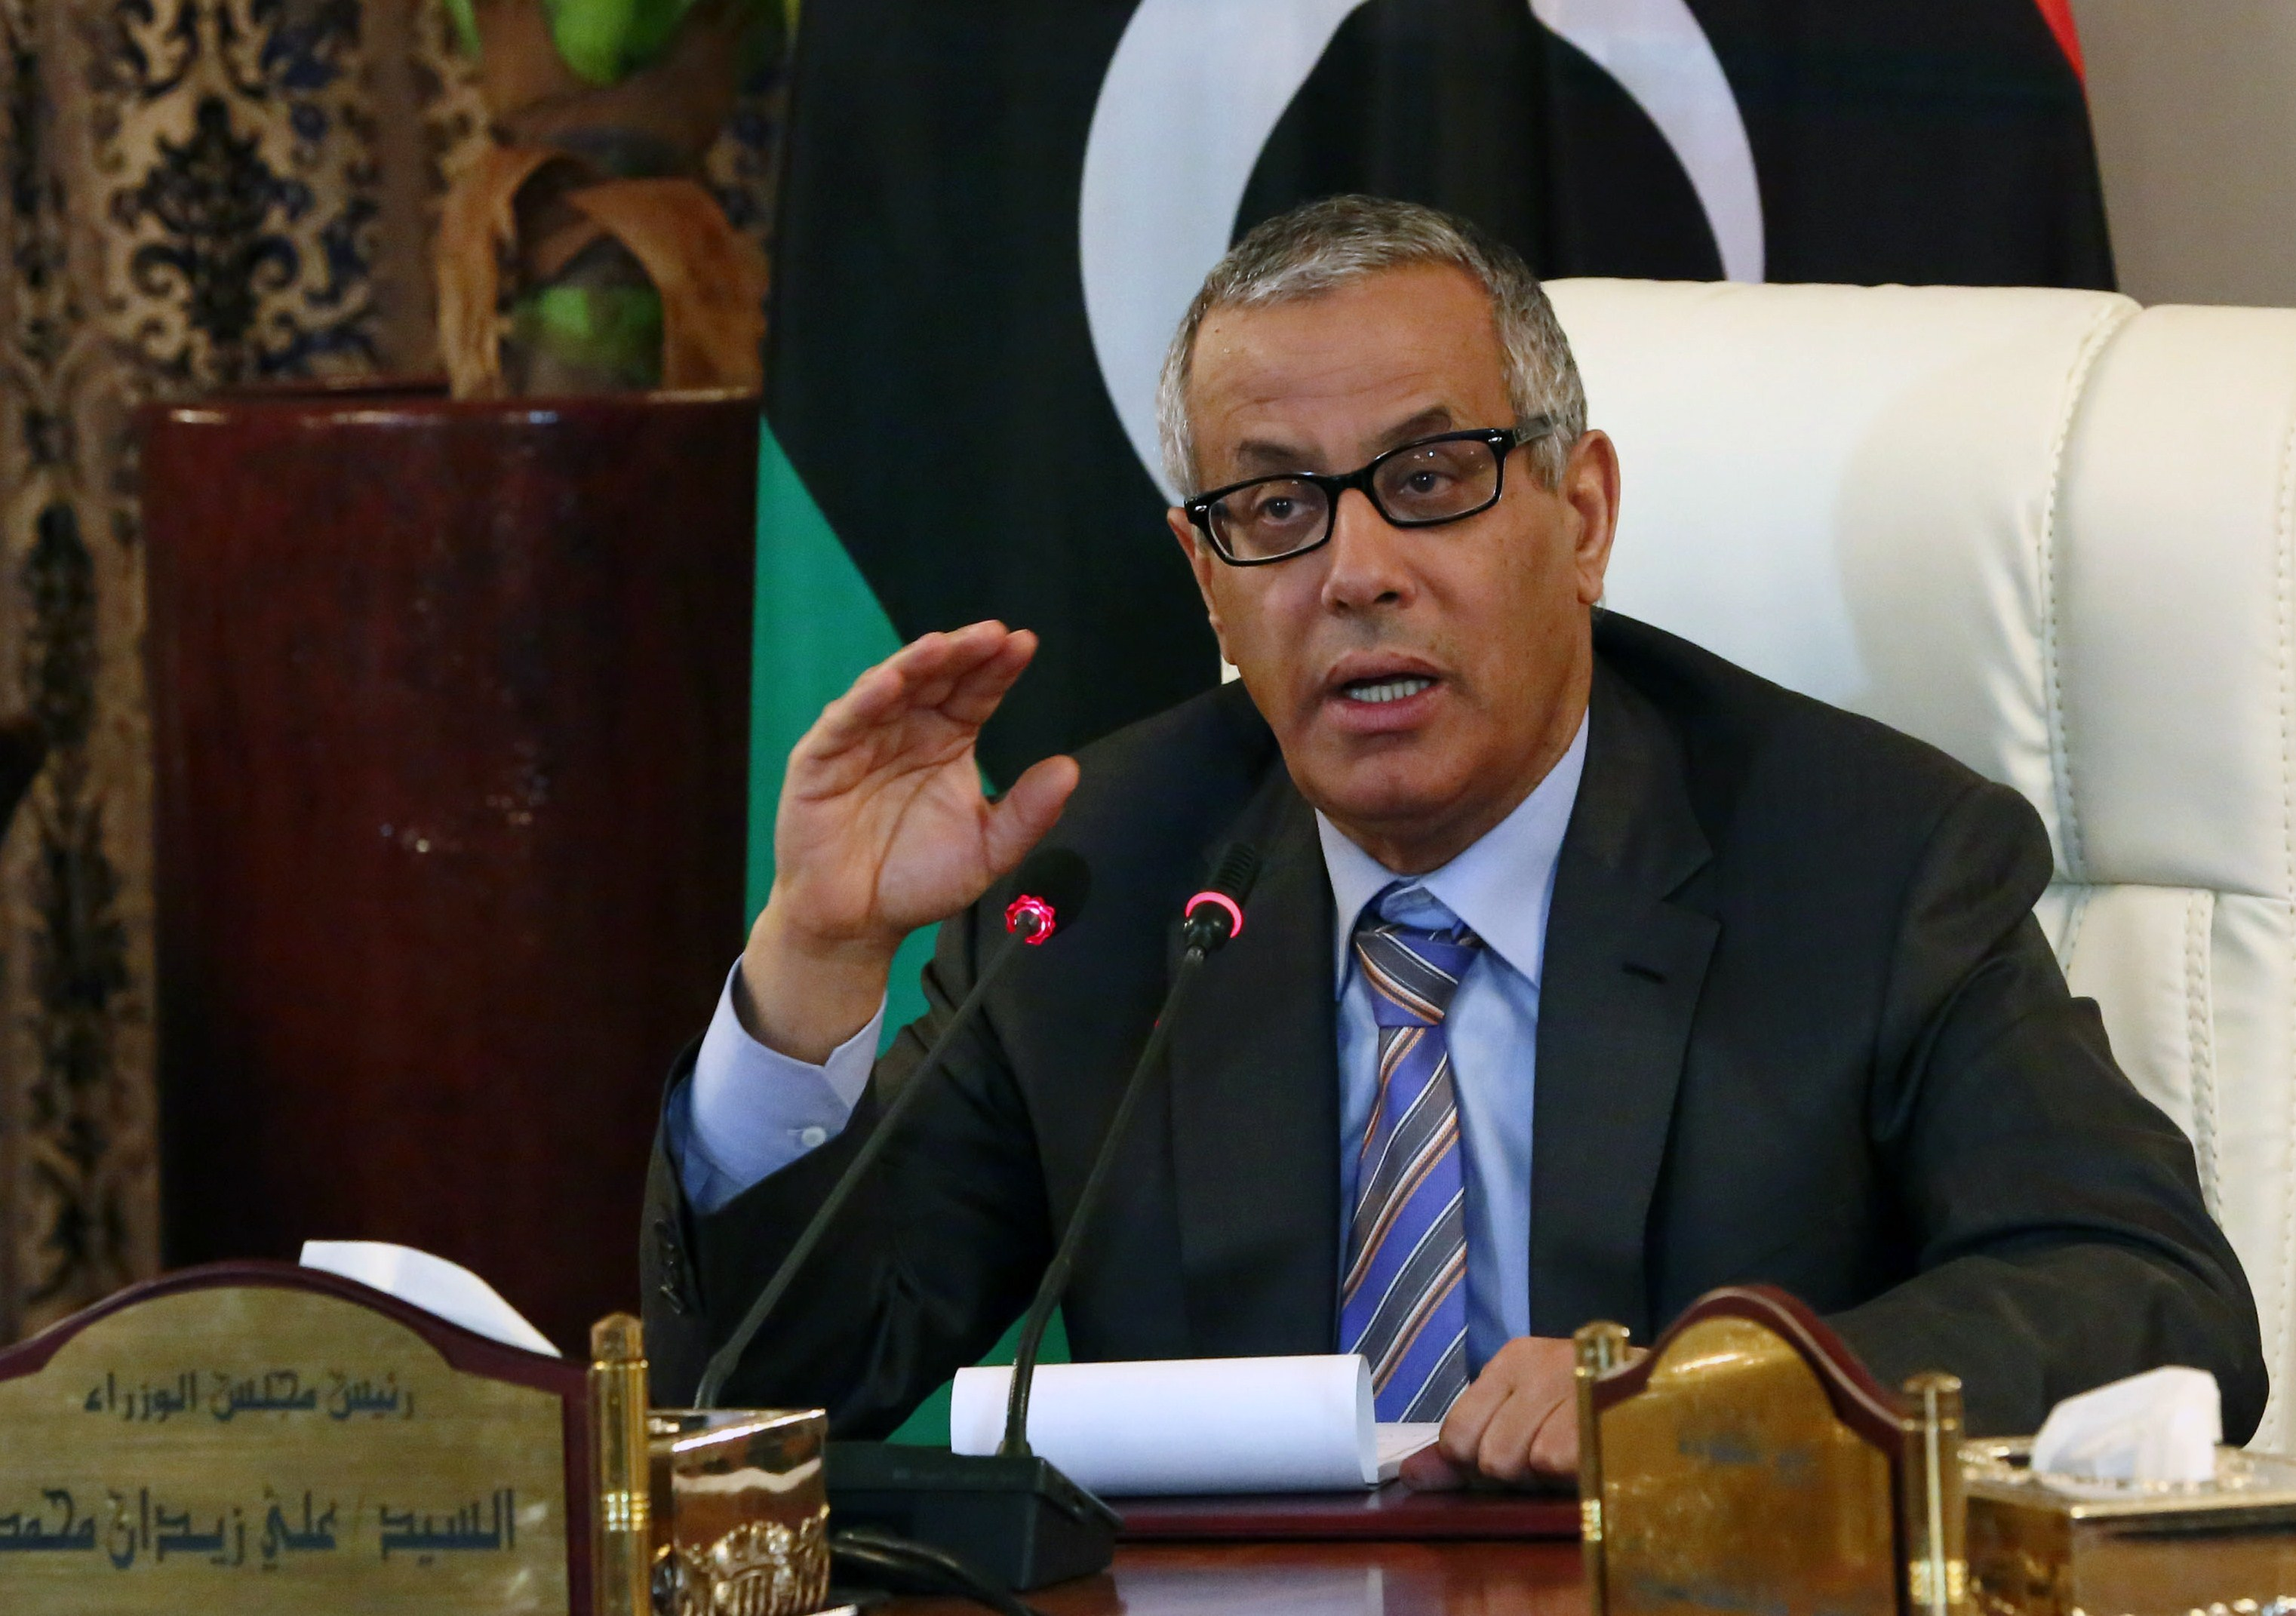 Libyan Prime Minister Ali Zaidan speaks during a press conference with Interior Minister following a rocket attack on a building located in a residential area on July 24, 2013 in Tripoli, Libya. (AFP Photo)